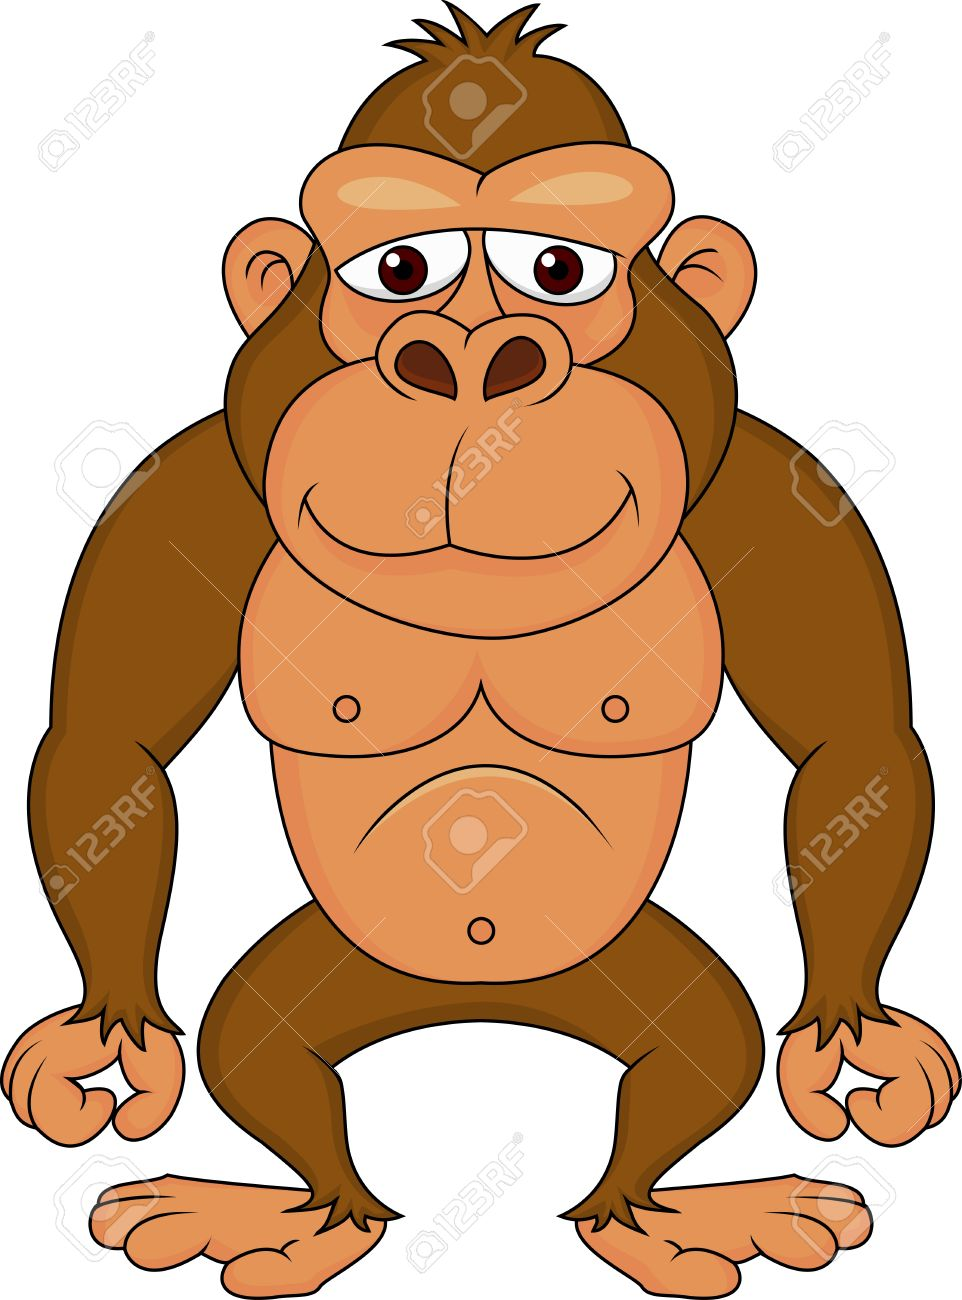 517 Simian Stock Vector Illustration And Royalty Free Simian Clipart.